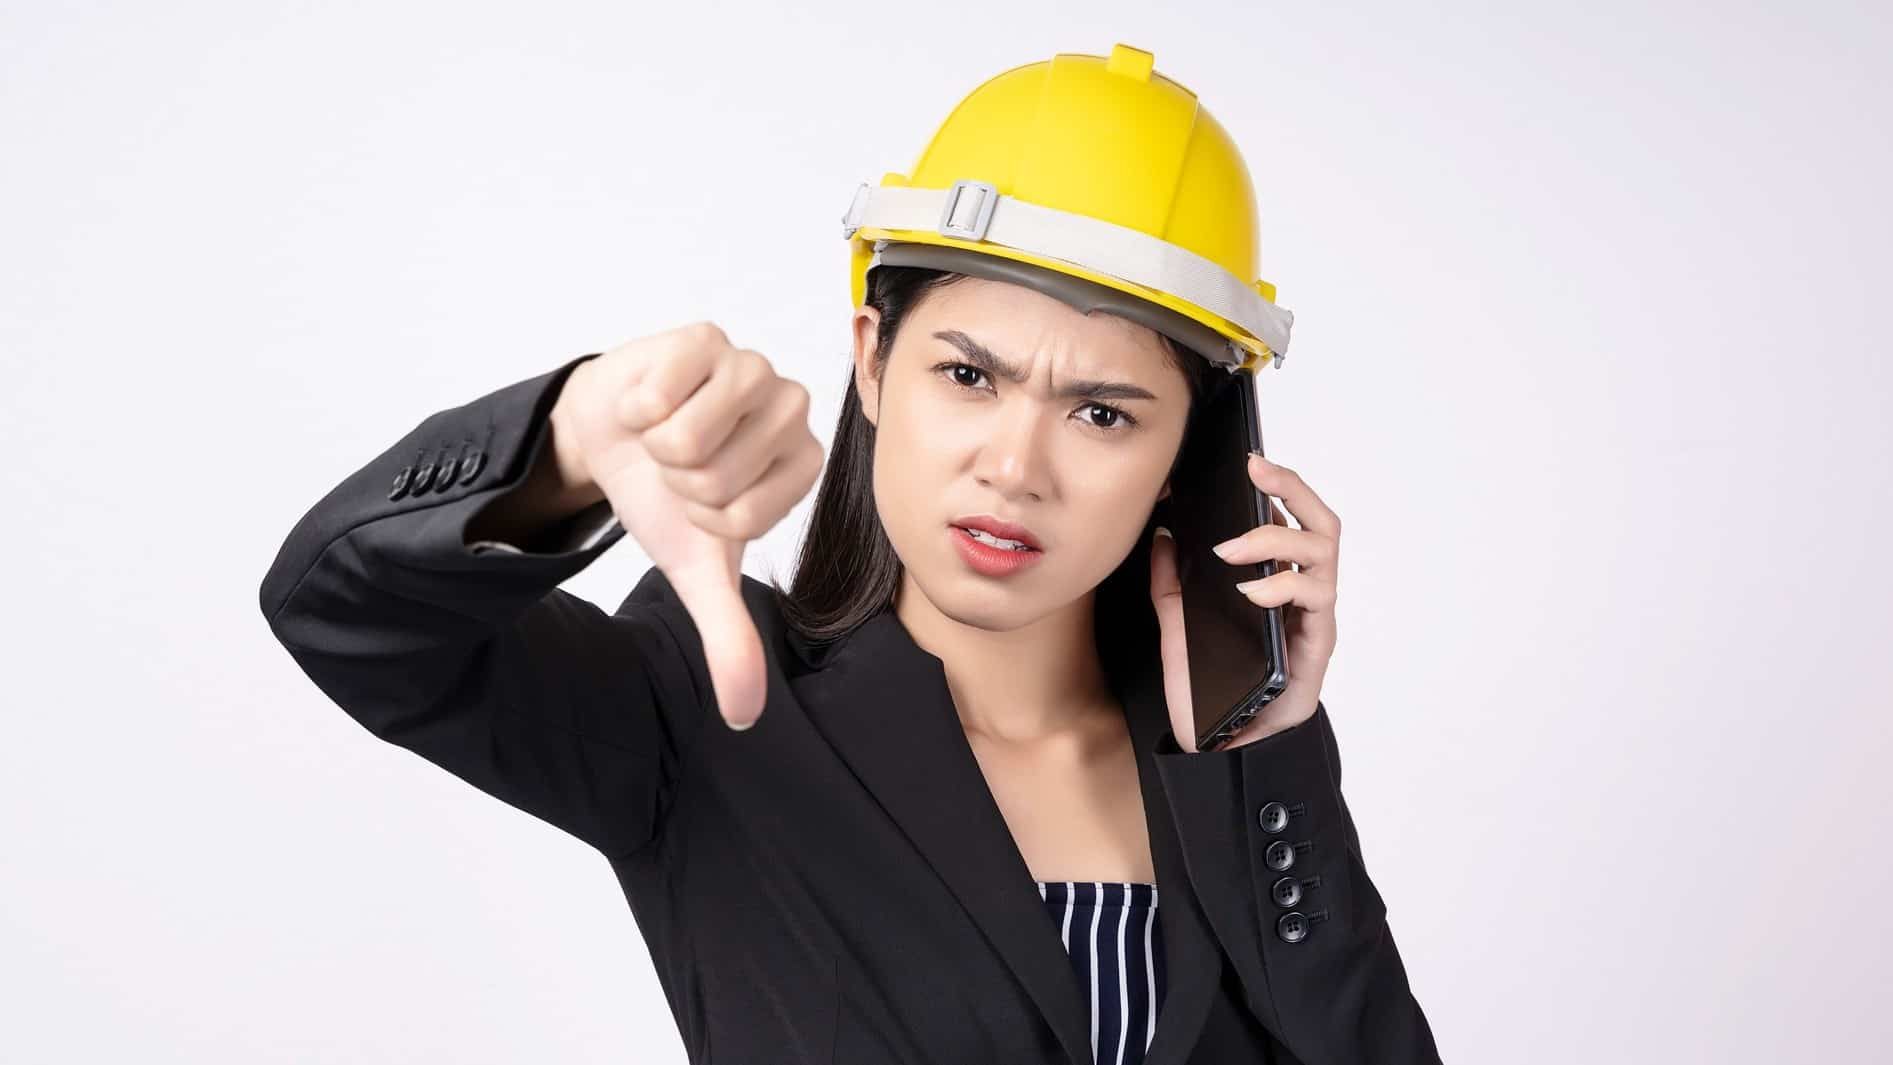 Female worker in hard hat puts thumb down while on the phone